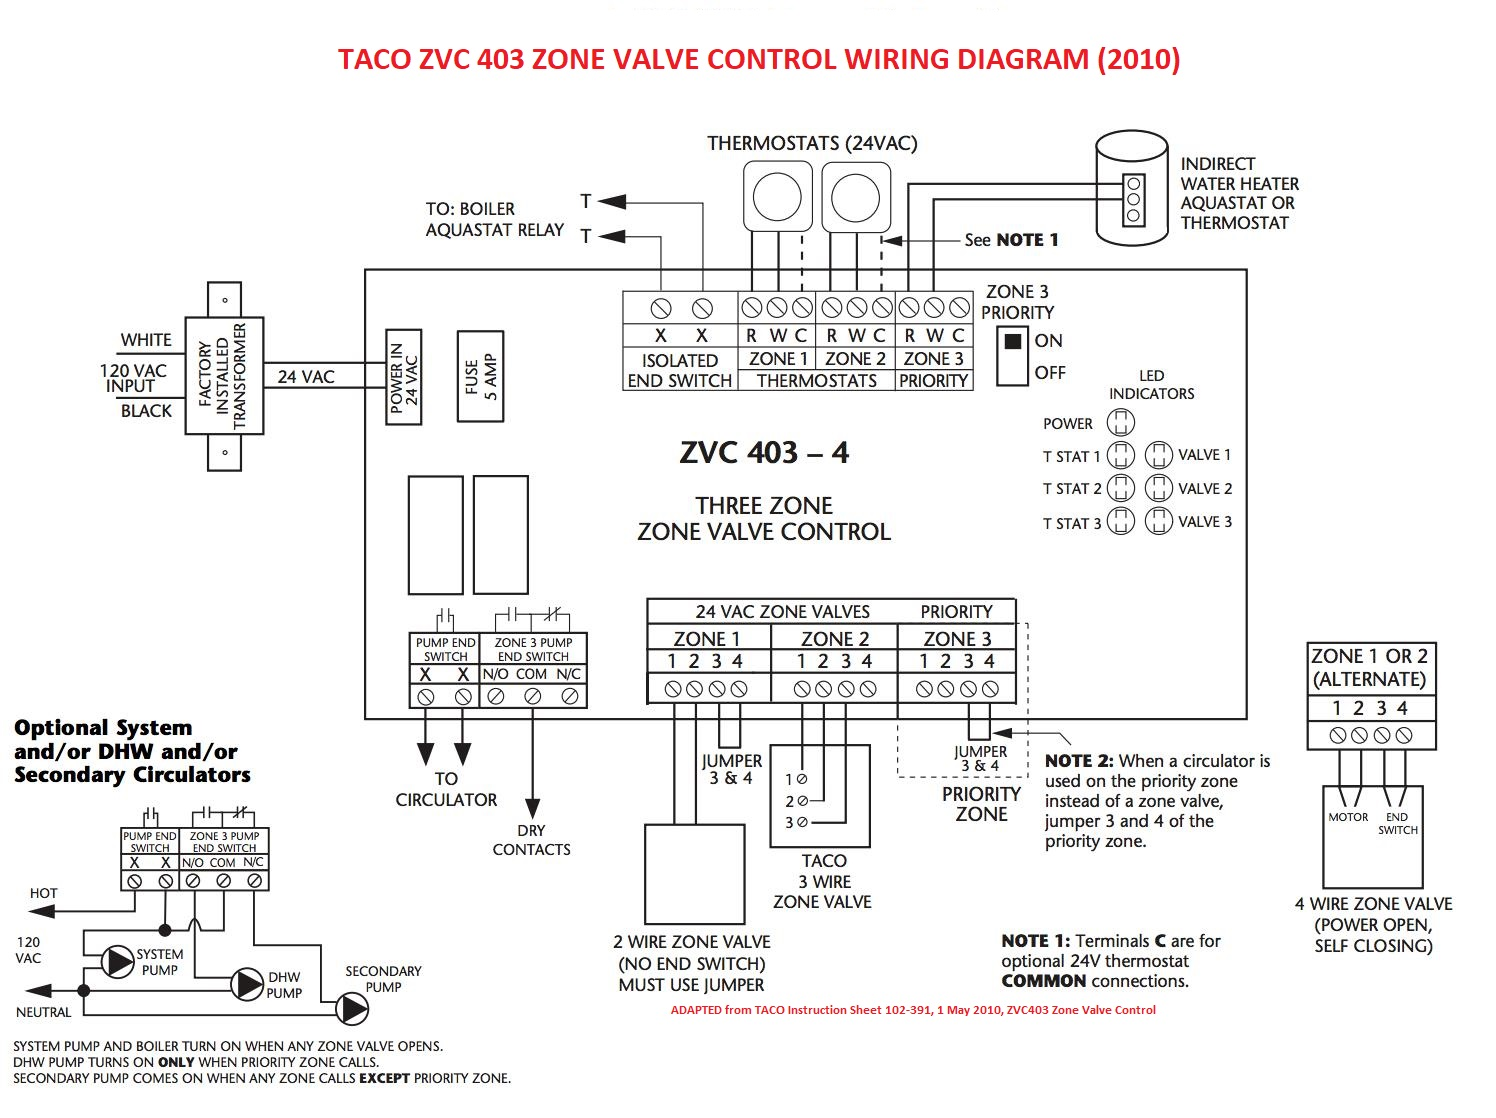 Valve Switch Schematic Wire Center Circuit Scribe Conductive Ink Maker Kit Electroninks Cskitmaker Zone Wiring Installation Instructions Guide To Heating Rh Inspectapedia Com Light Diagram